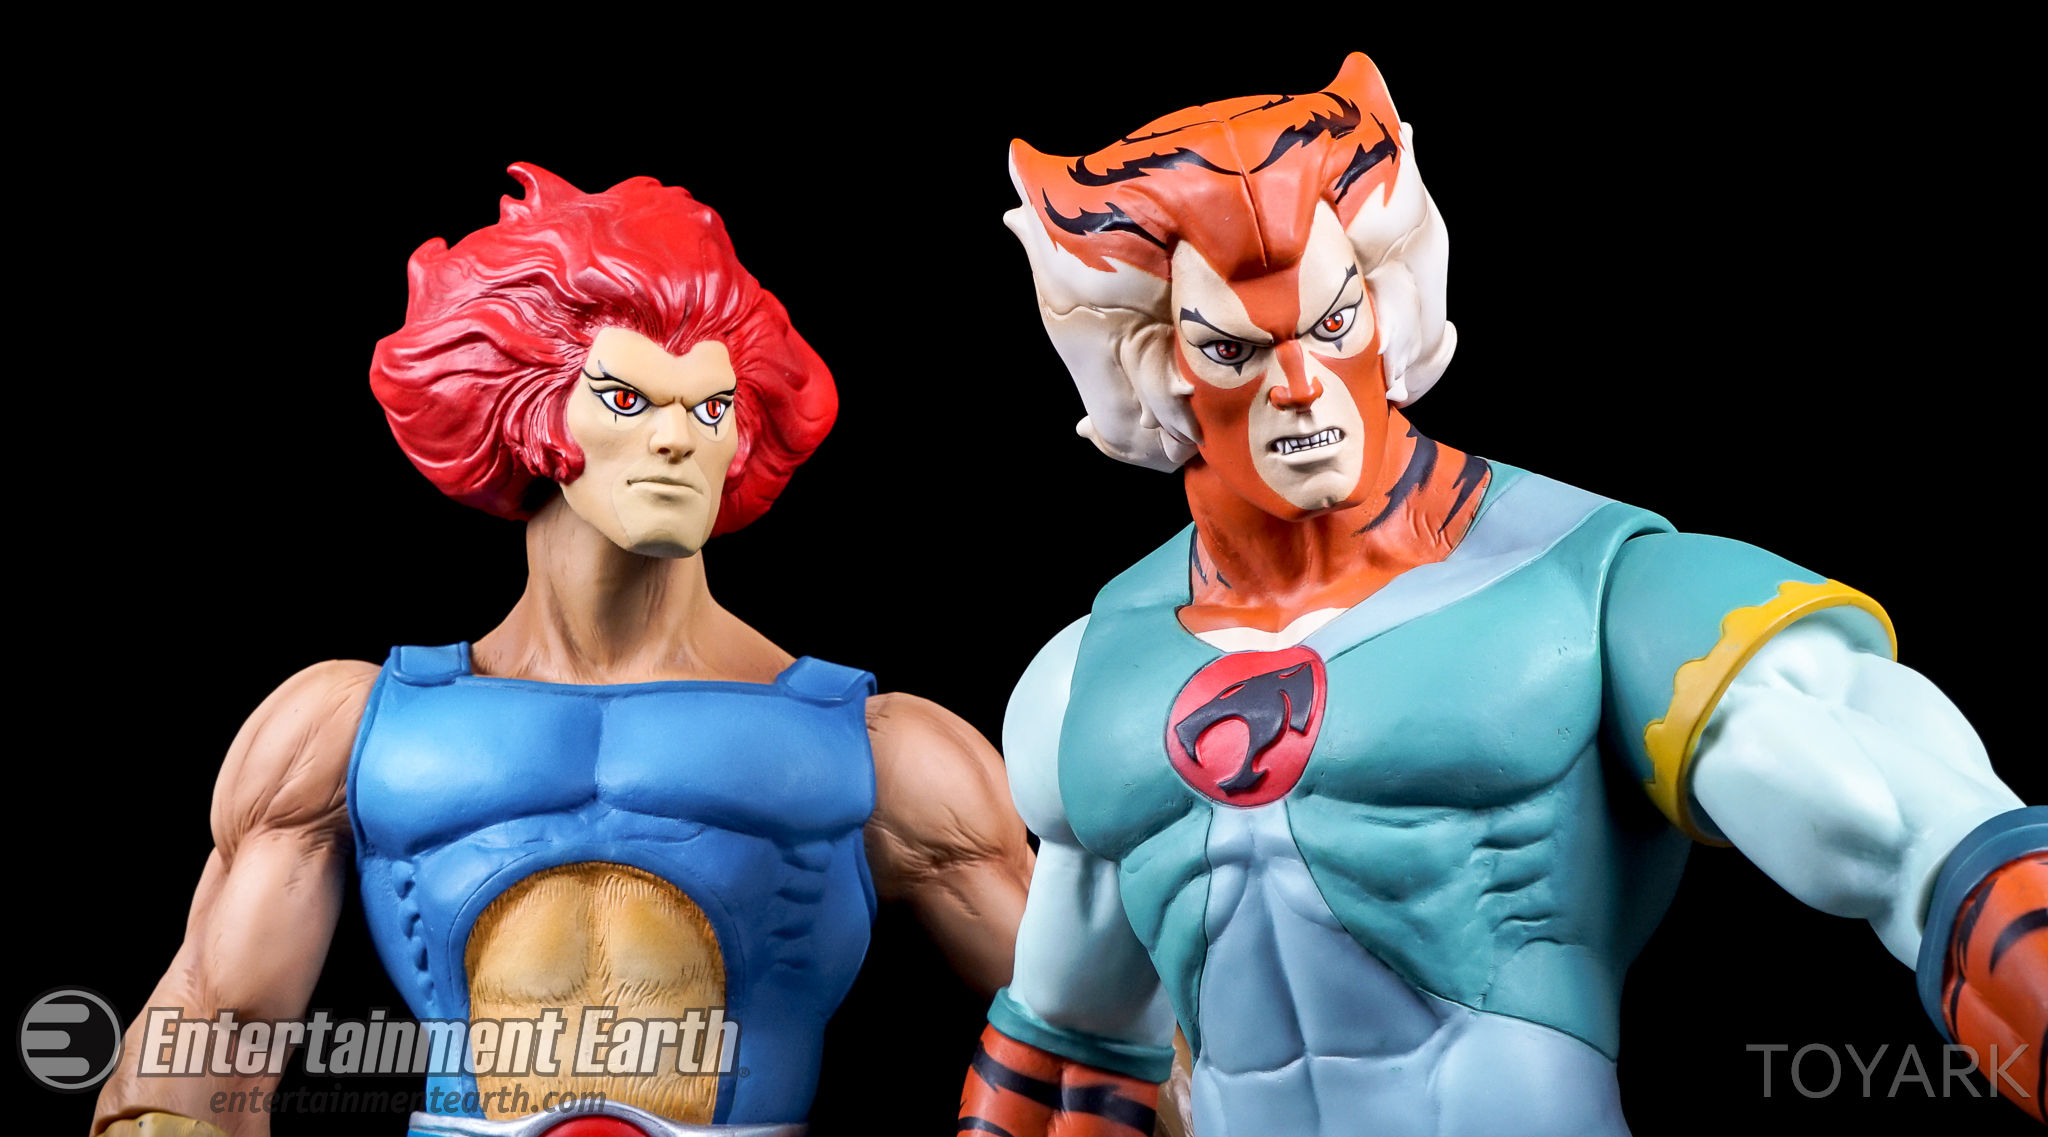 http://news.toyark.com/wp-content/uploads/sites/4/2016/05/Mezco-Thundercats-Tygra-034.jpg